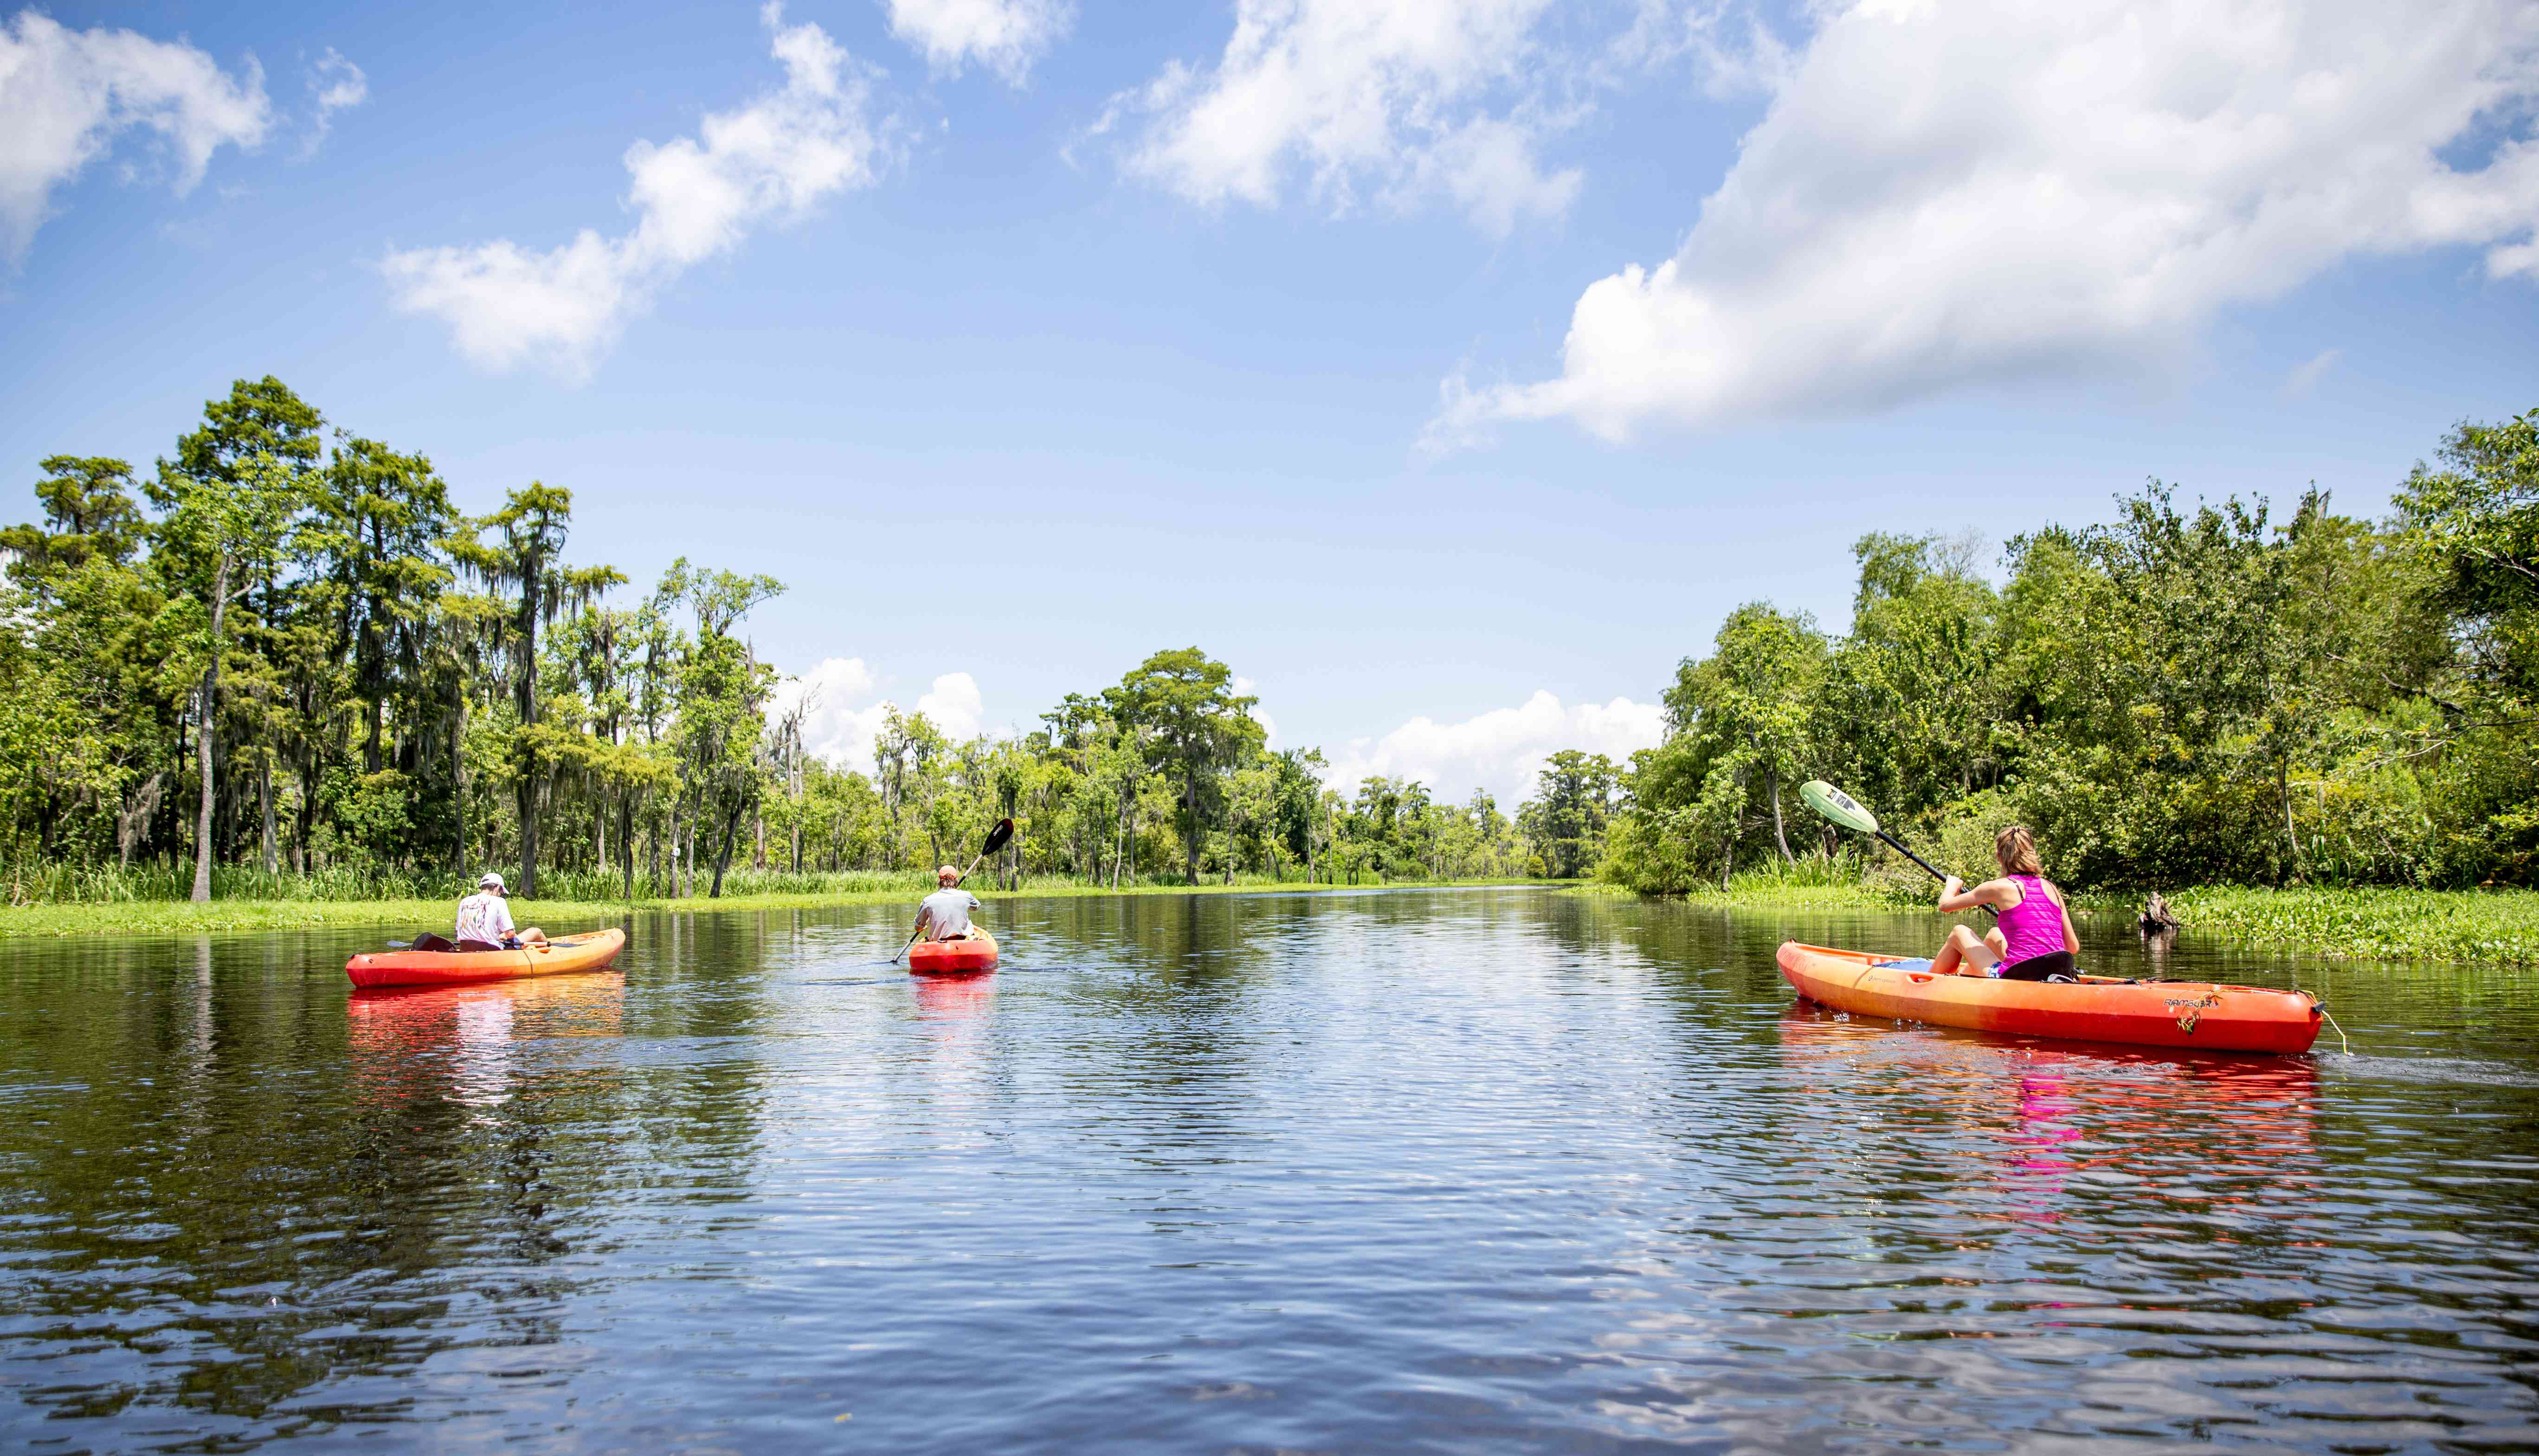 People kayaking the bayou near new orleans